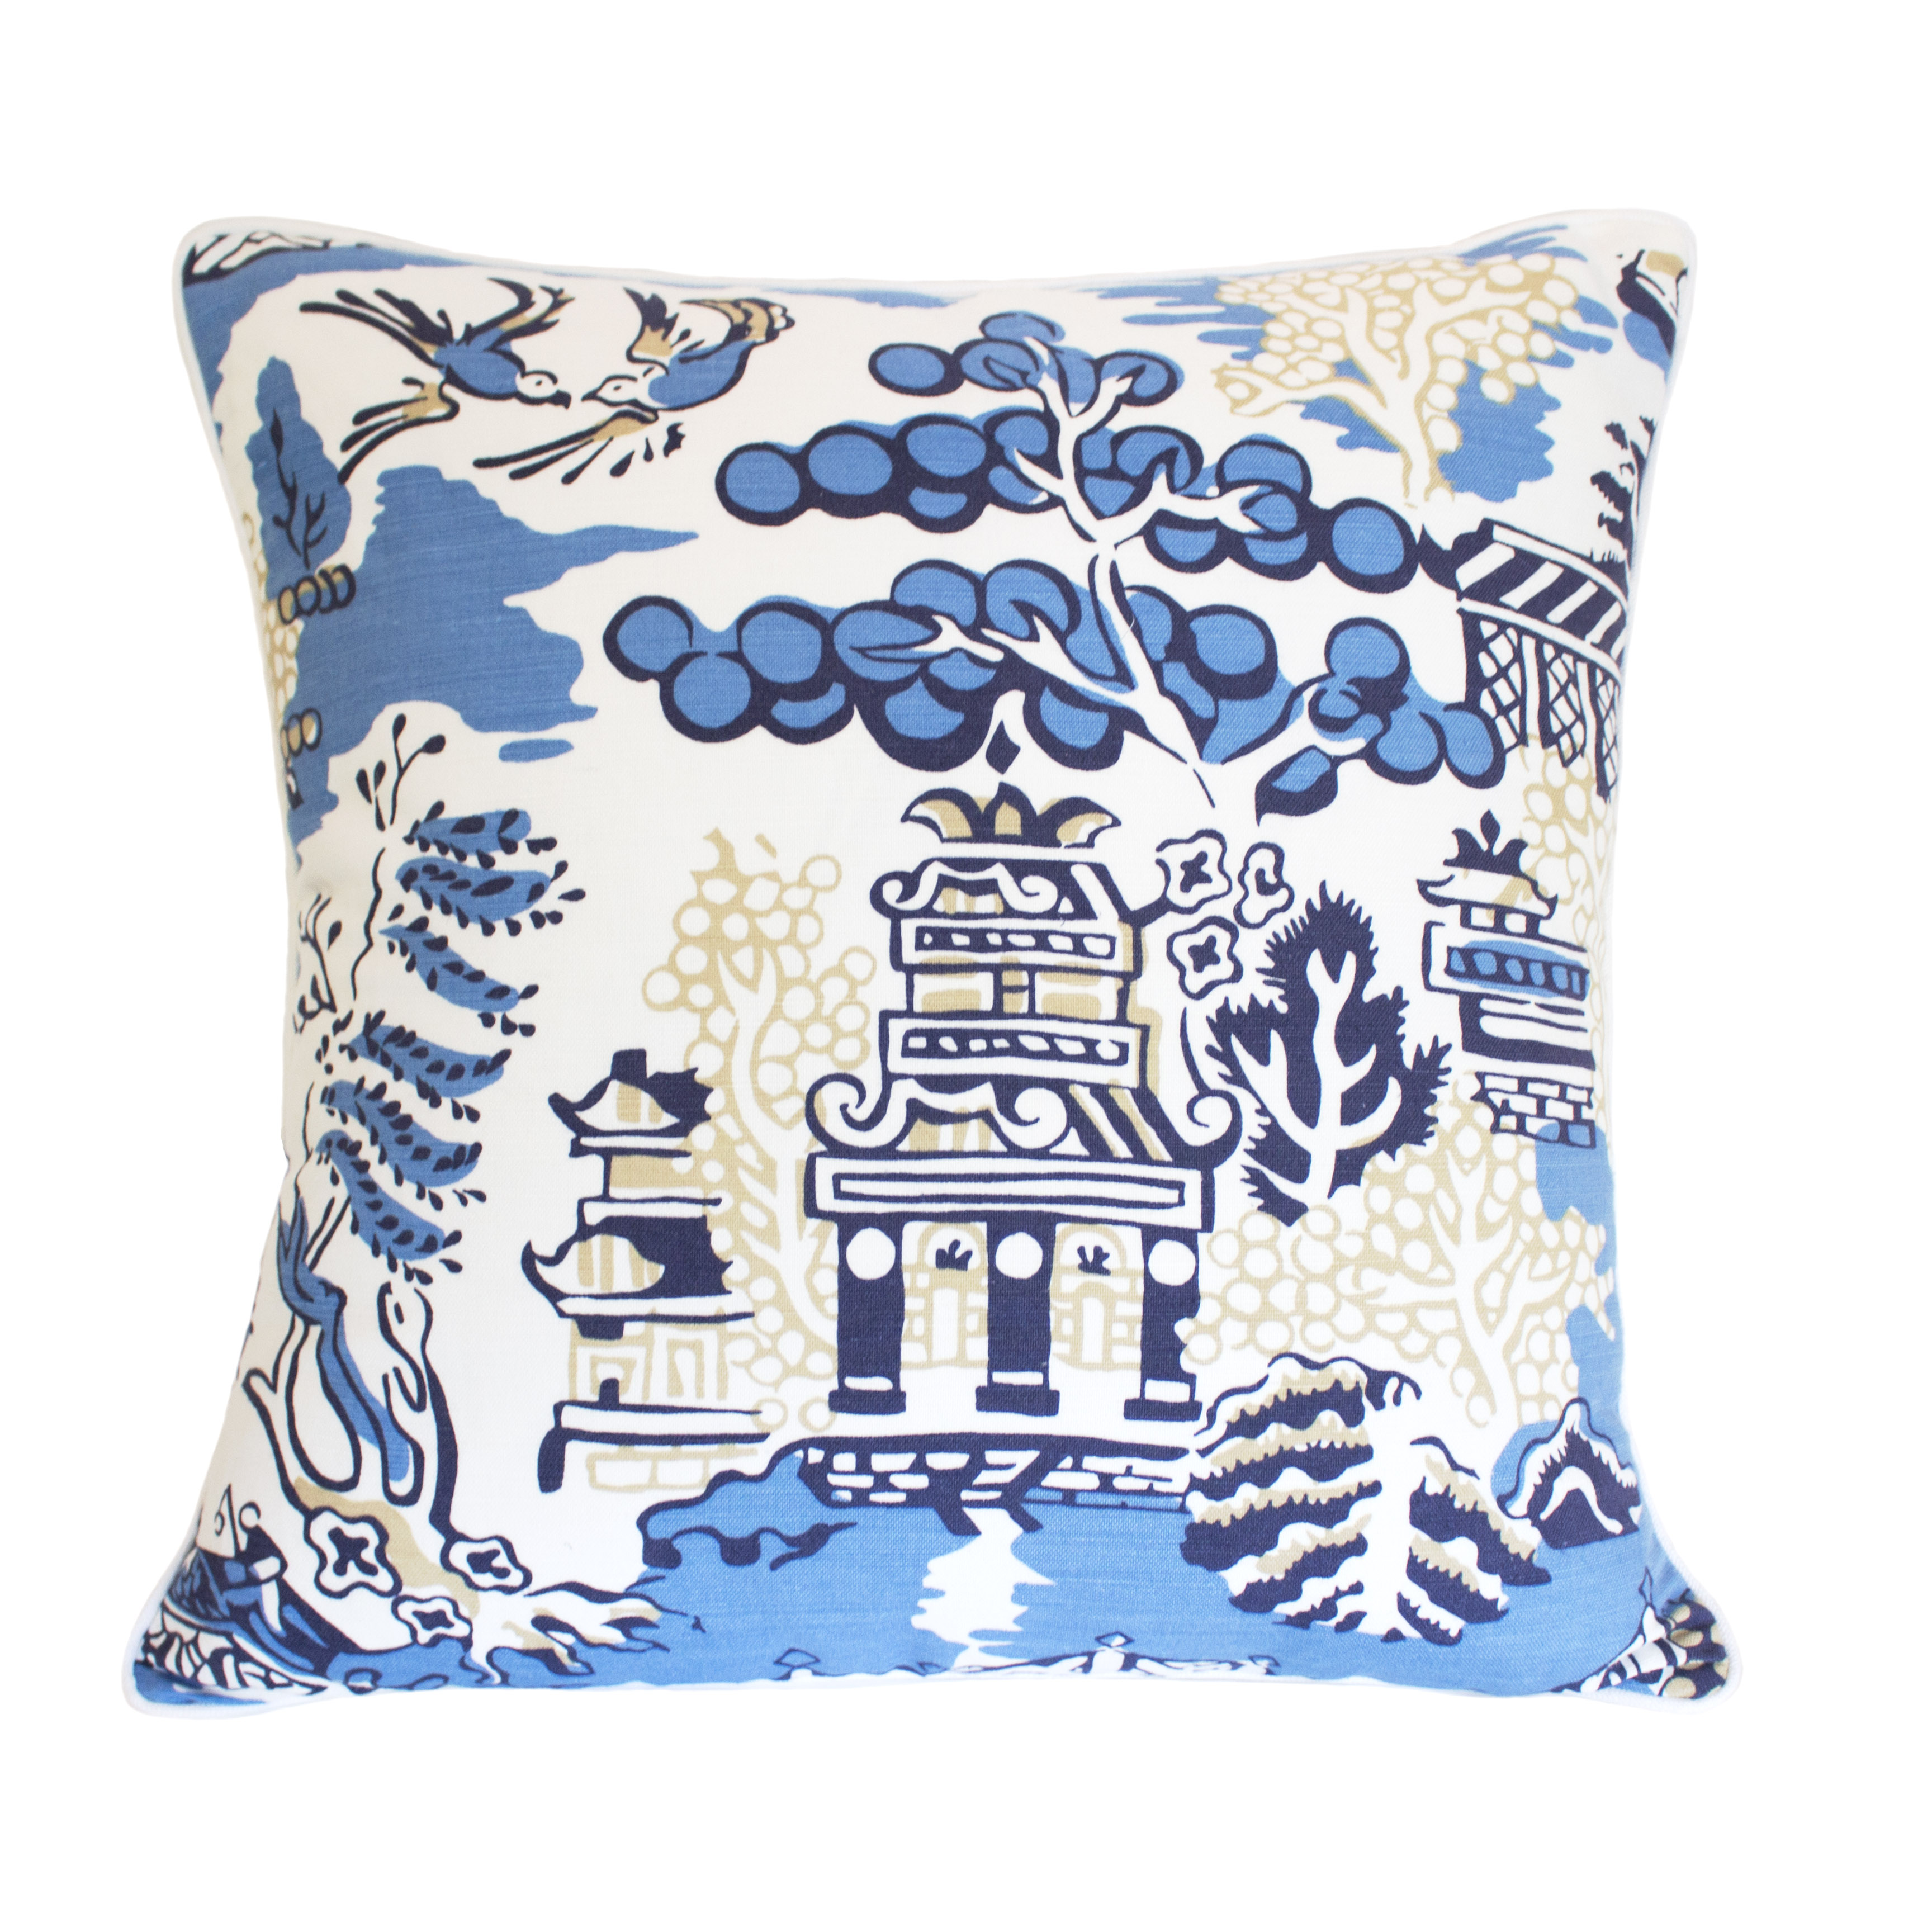 THIBAUT CHOISERIE PILLOW